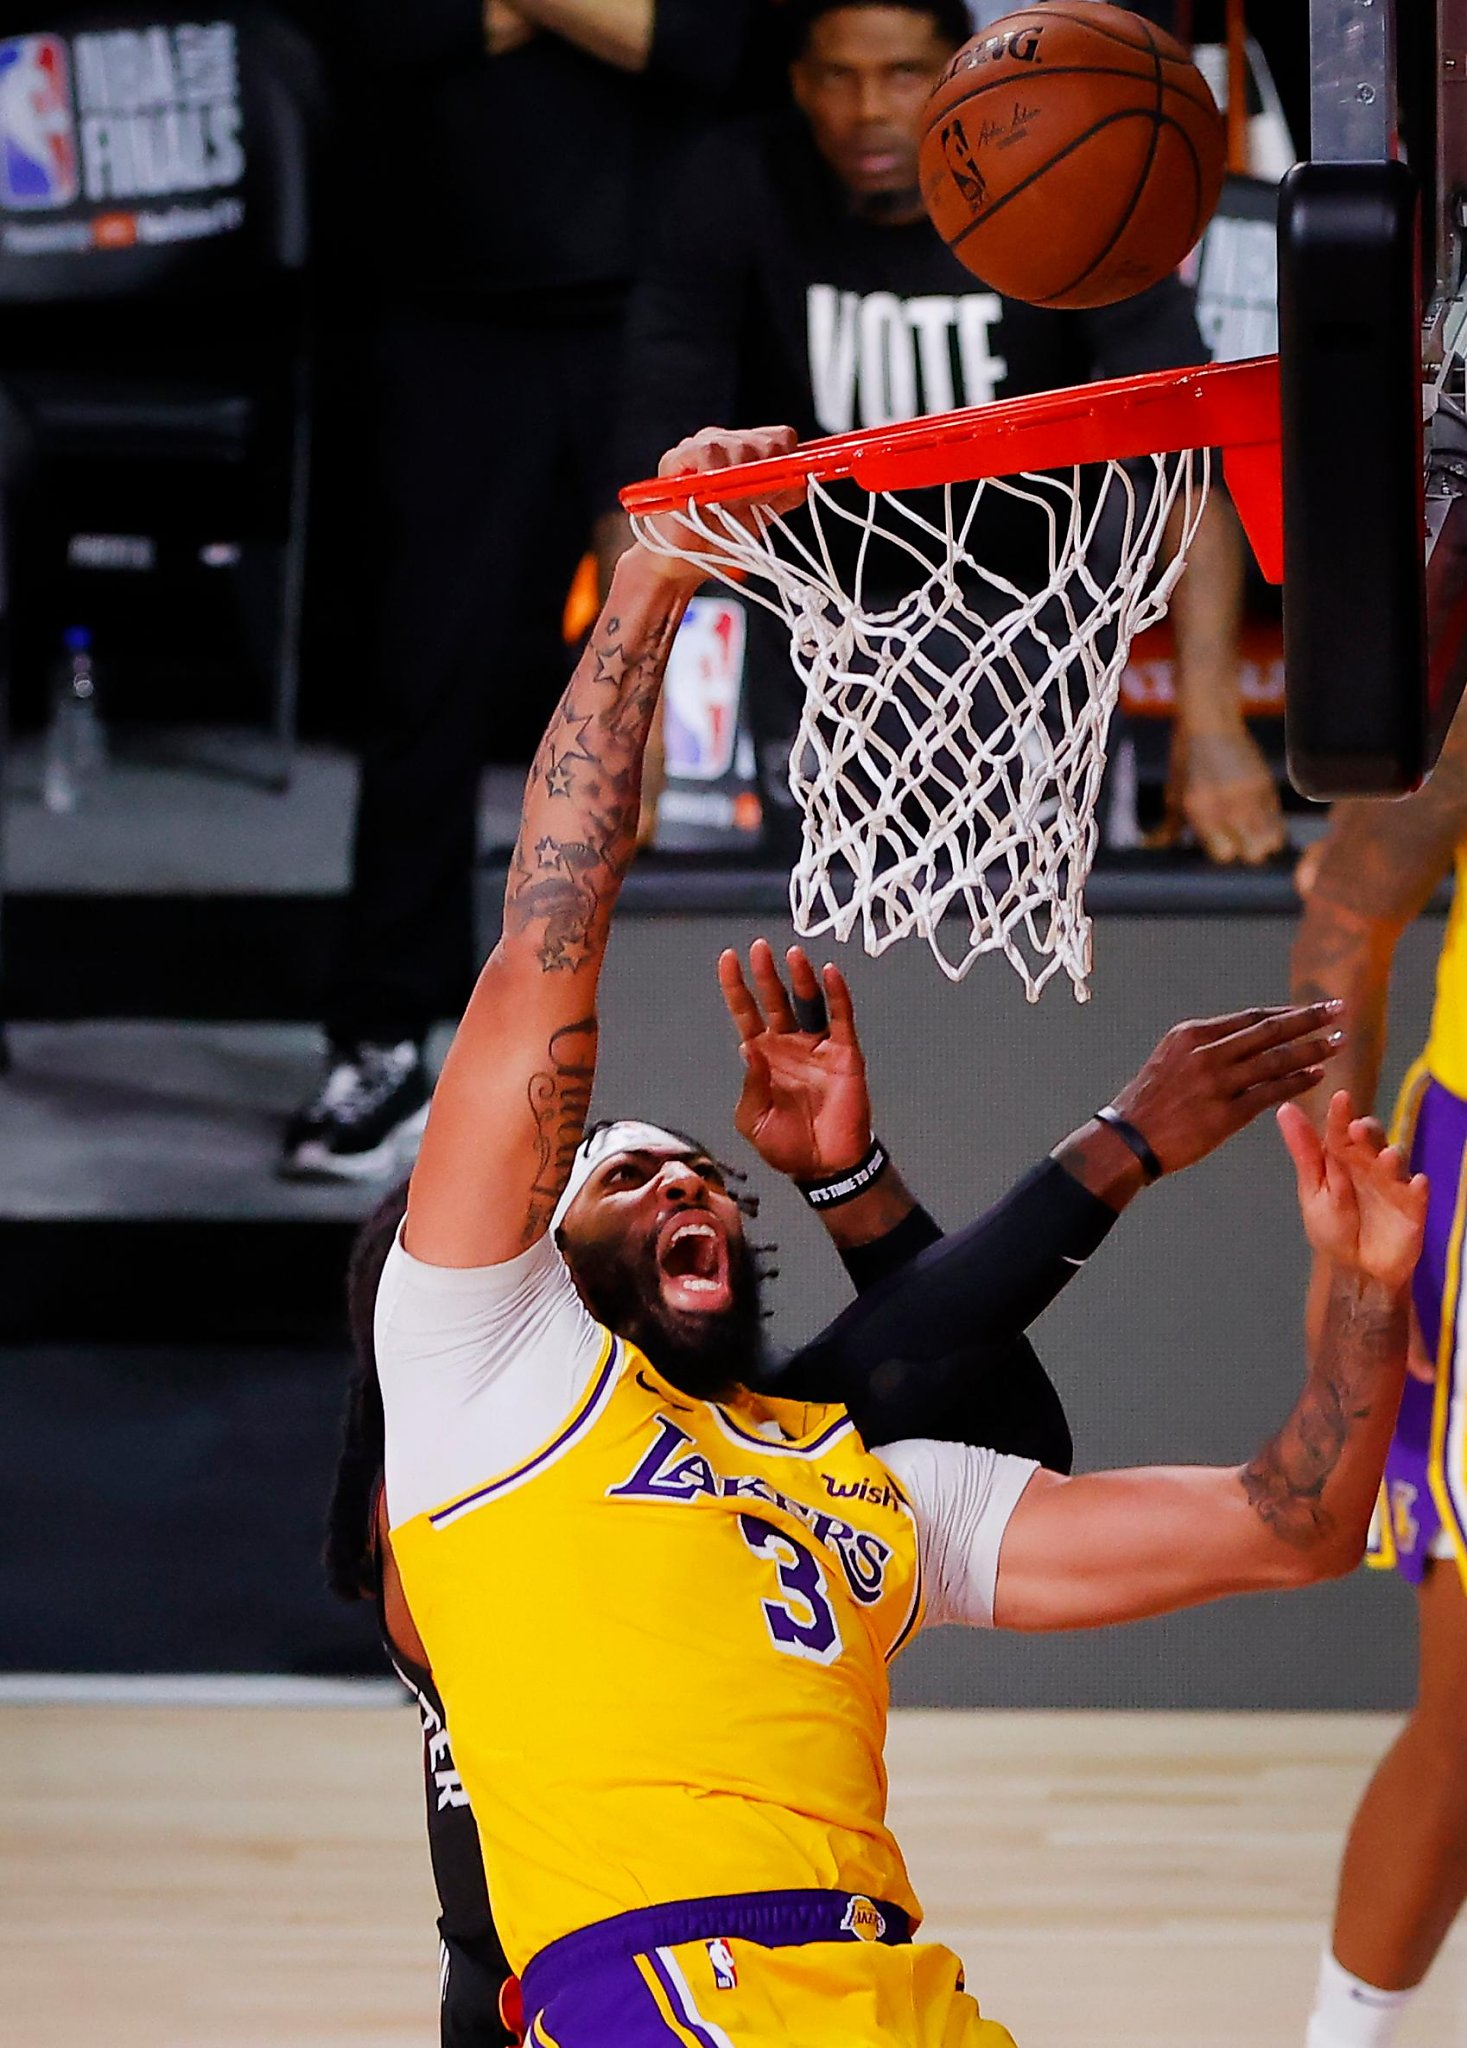 Lakers Lebron Roll In Game 1 Of Nba Finals Top Heat 116 98 Sfchronicle Com